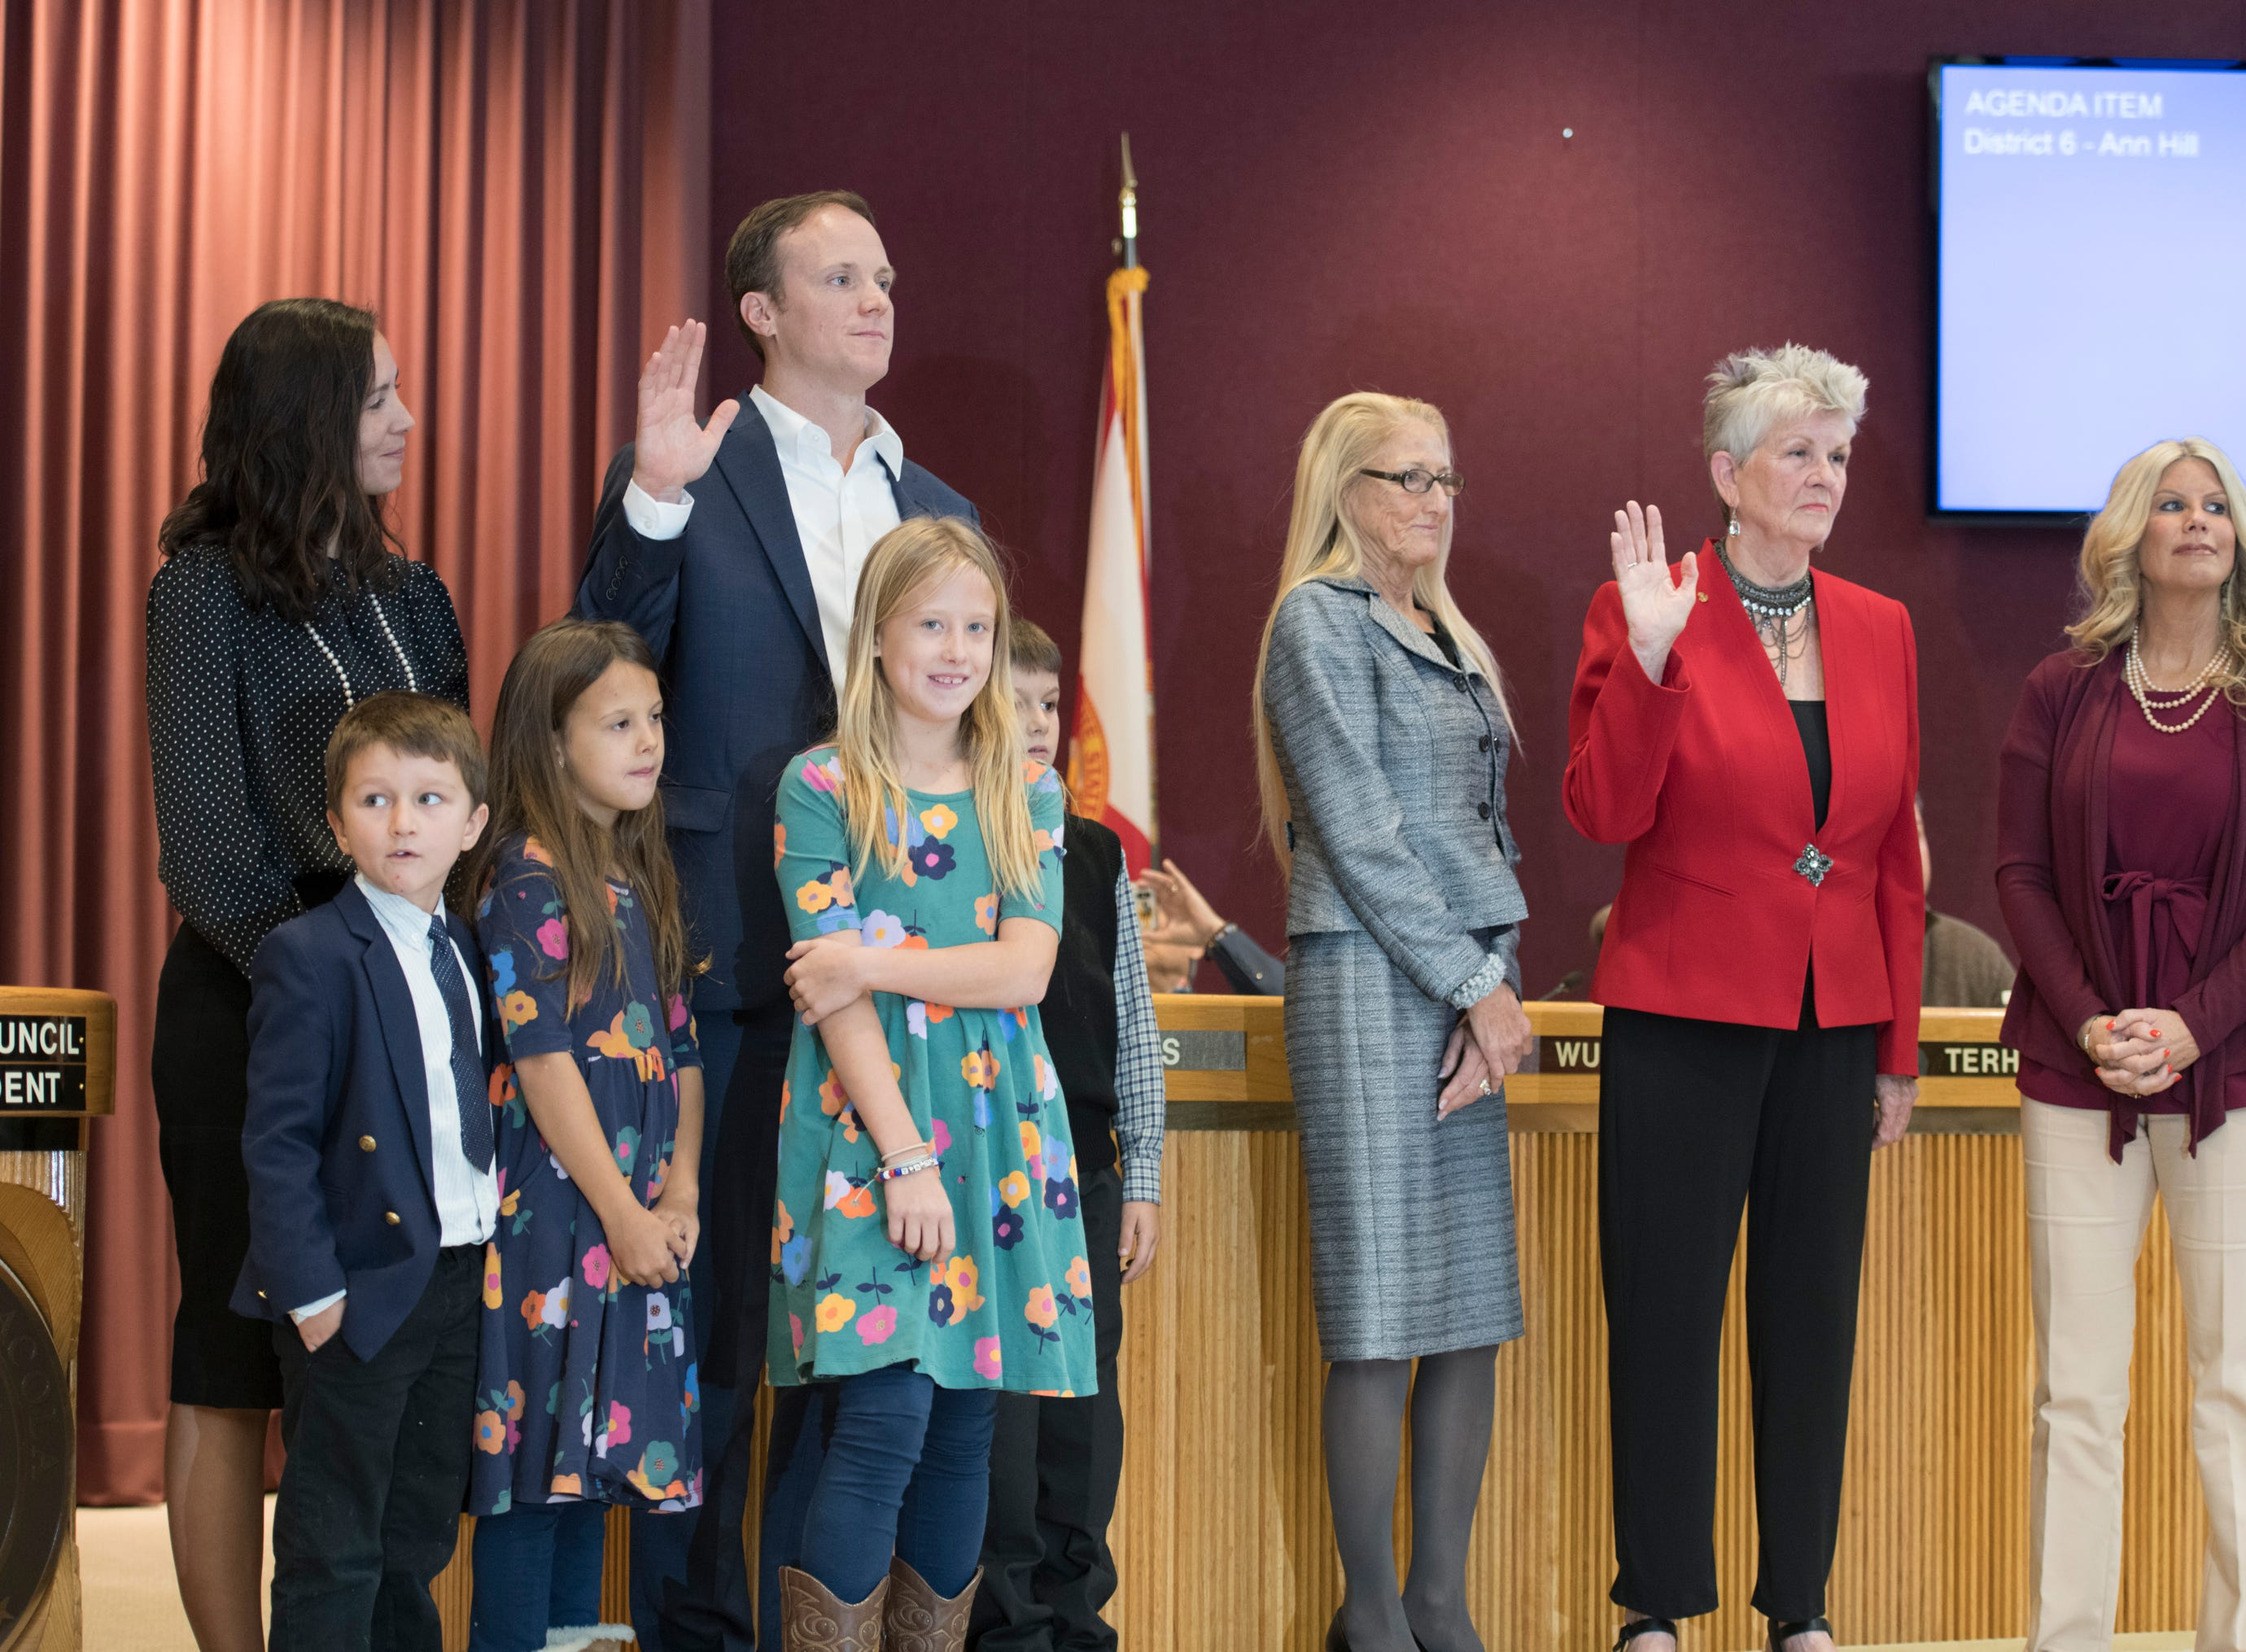 Newly elected council members Jared Moore, left, and Sherri Myers raise their hands as they are sworn in during the Pensacola City Council installation ceremony at City Hall in Pensacola on Tuesday, November 27, 2018.